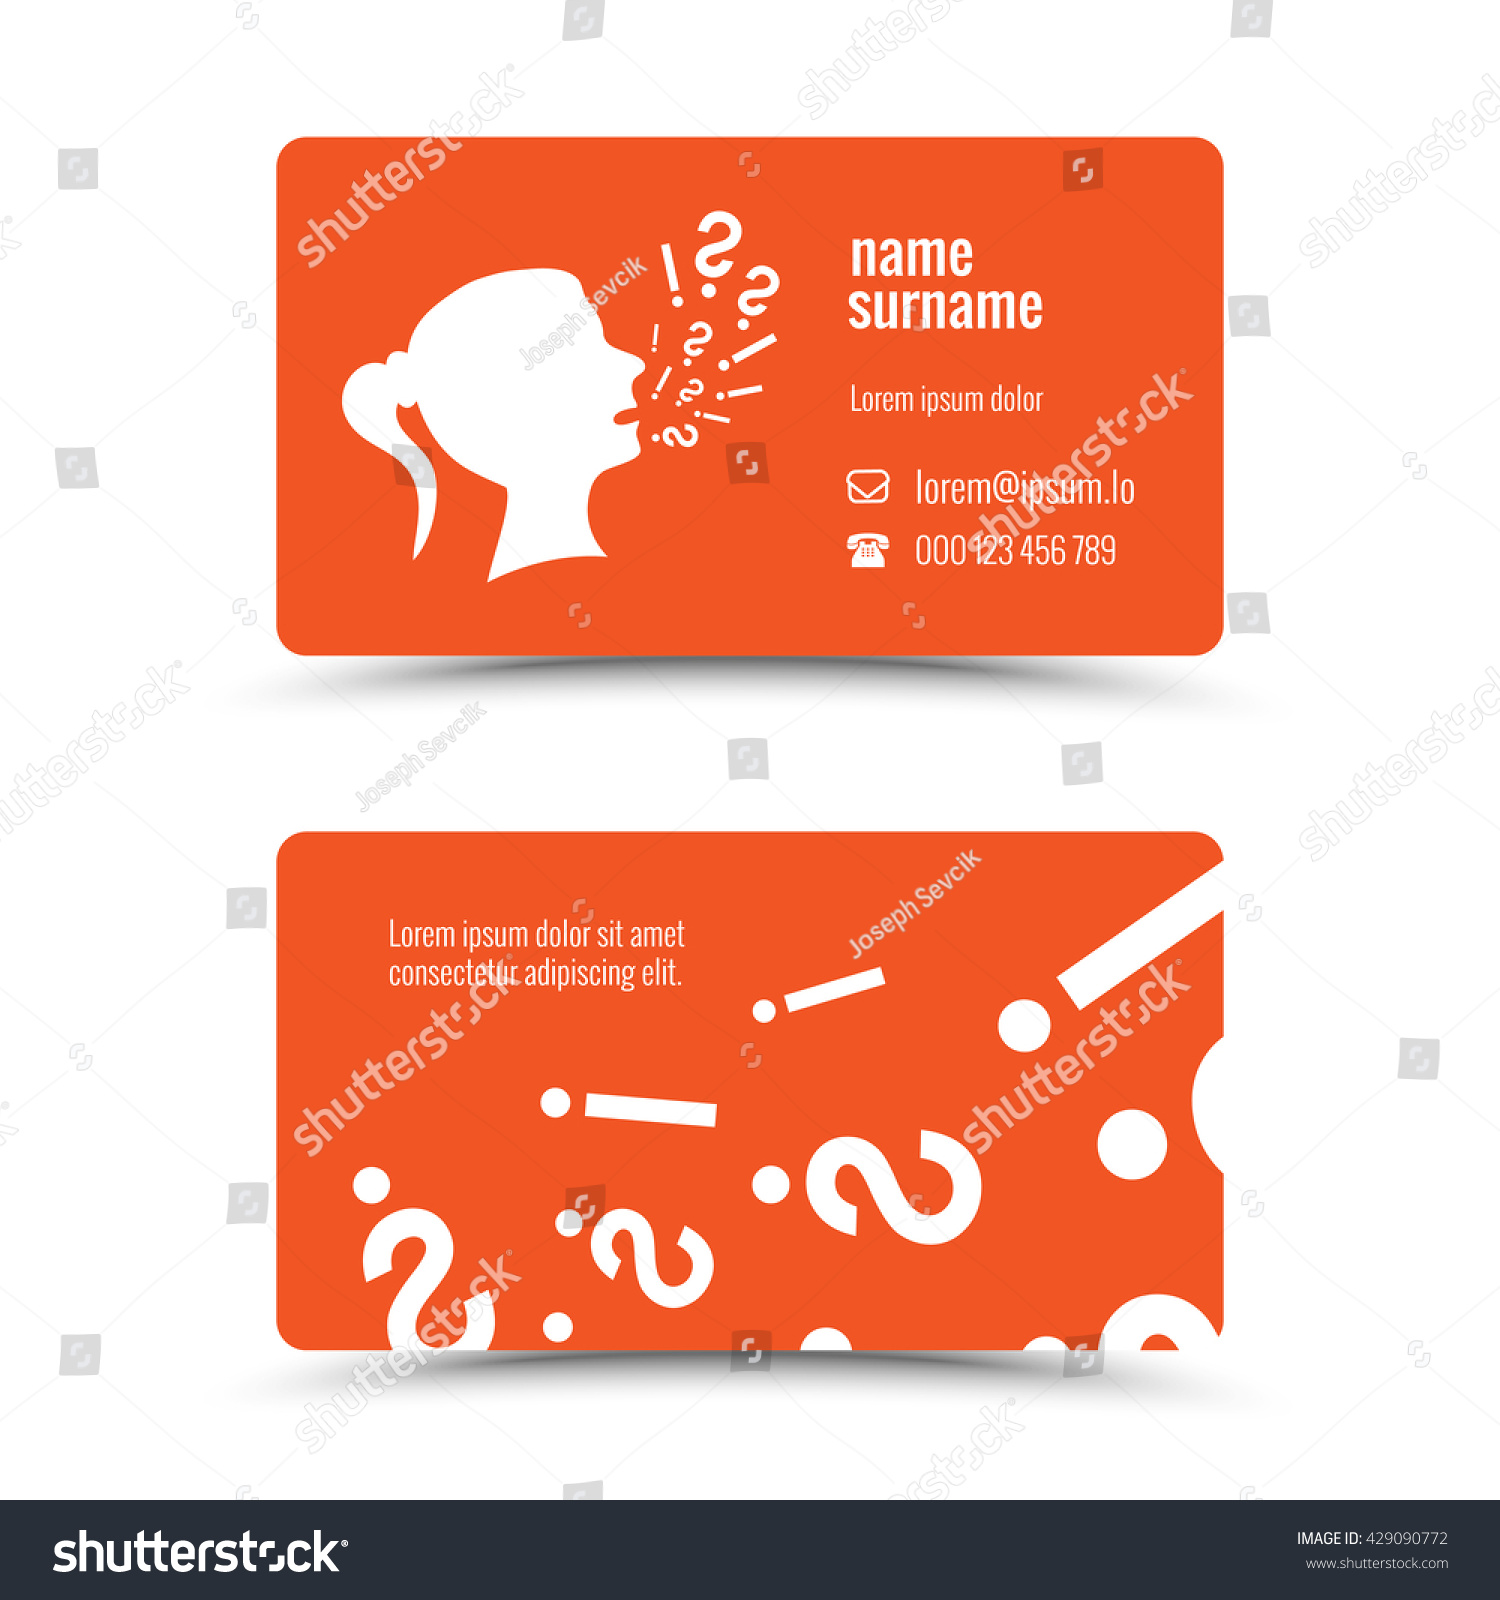 Modern business card template ask theme stock vector 429090772 modern business card template ask theme colourmoves